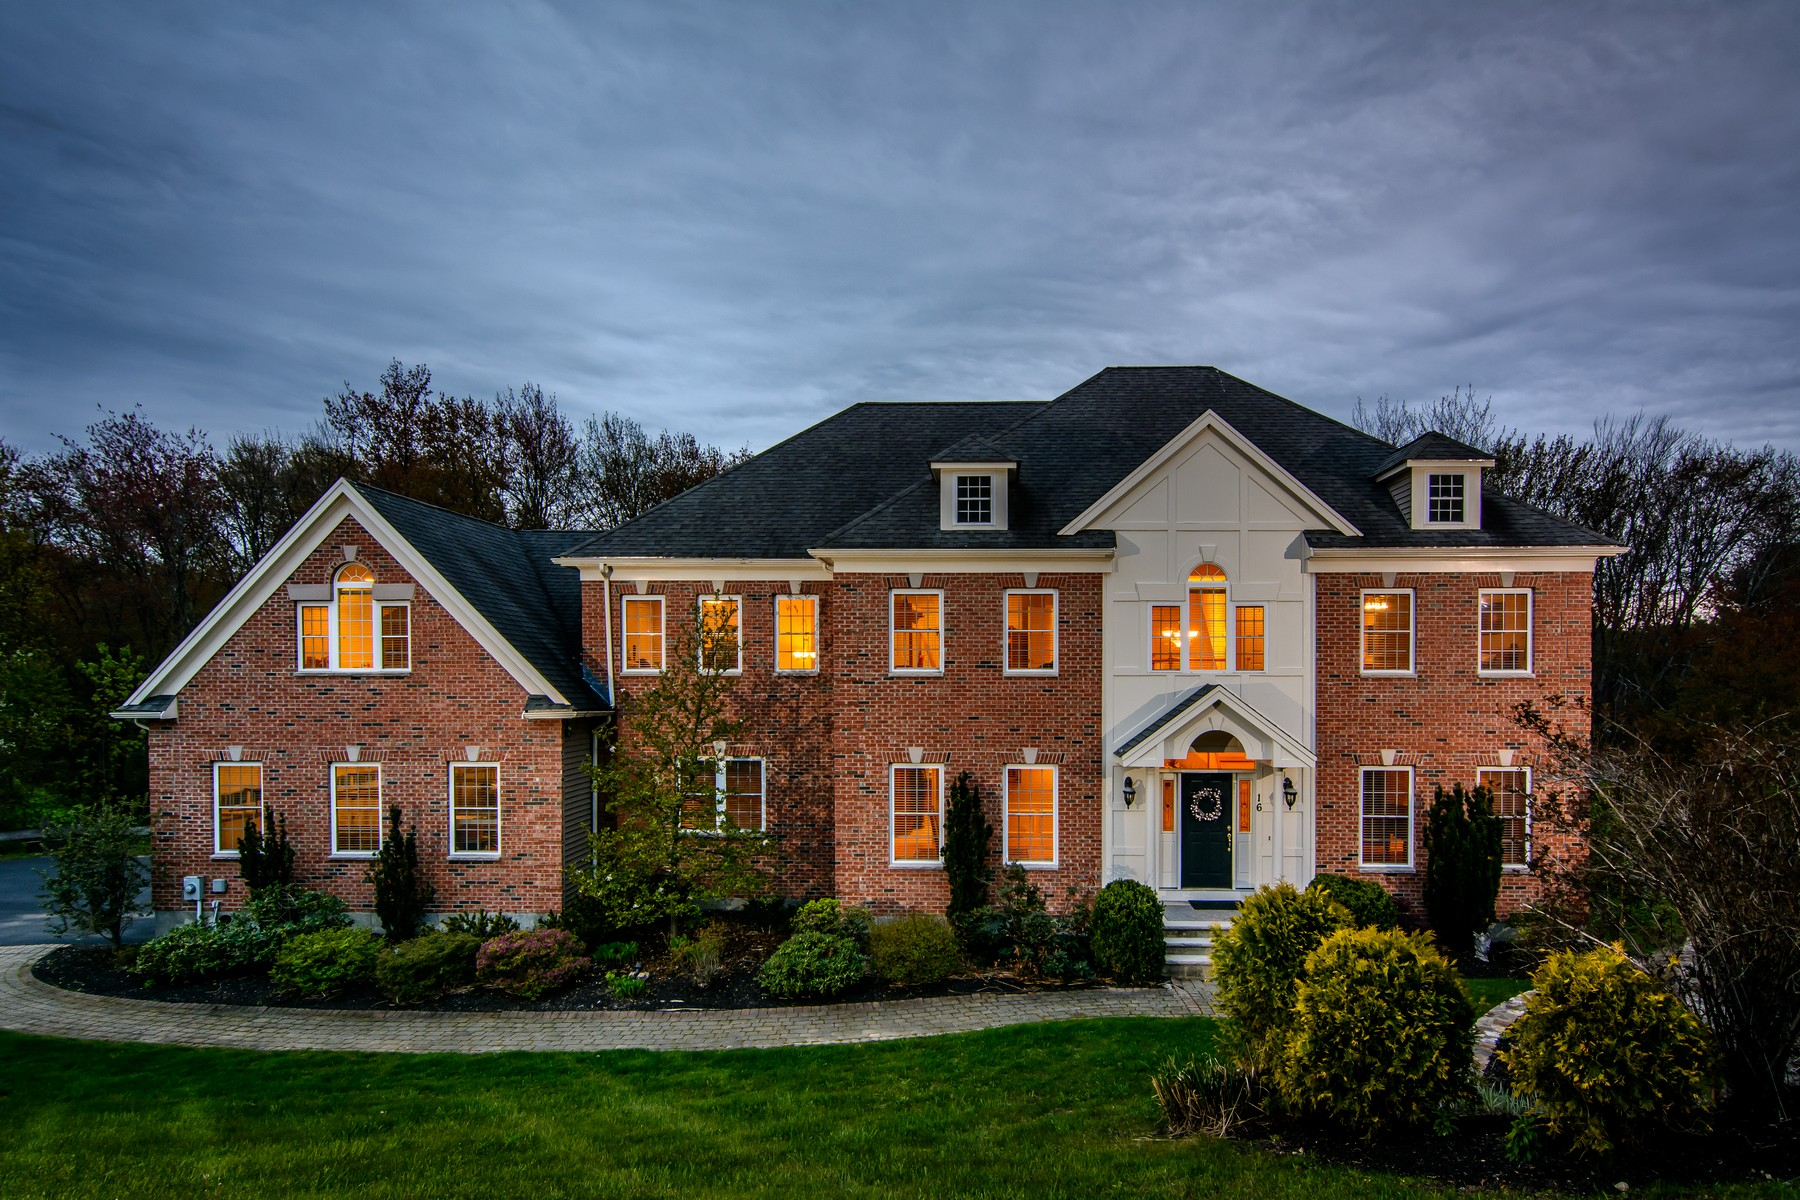 Single Family Homes for Active at Gorgeous, Meticulously Kept Colonial Home 16 Arrowhead Lane Westborough, Massachusetts 01581 United States